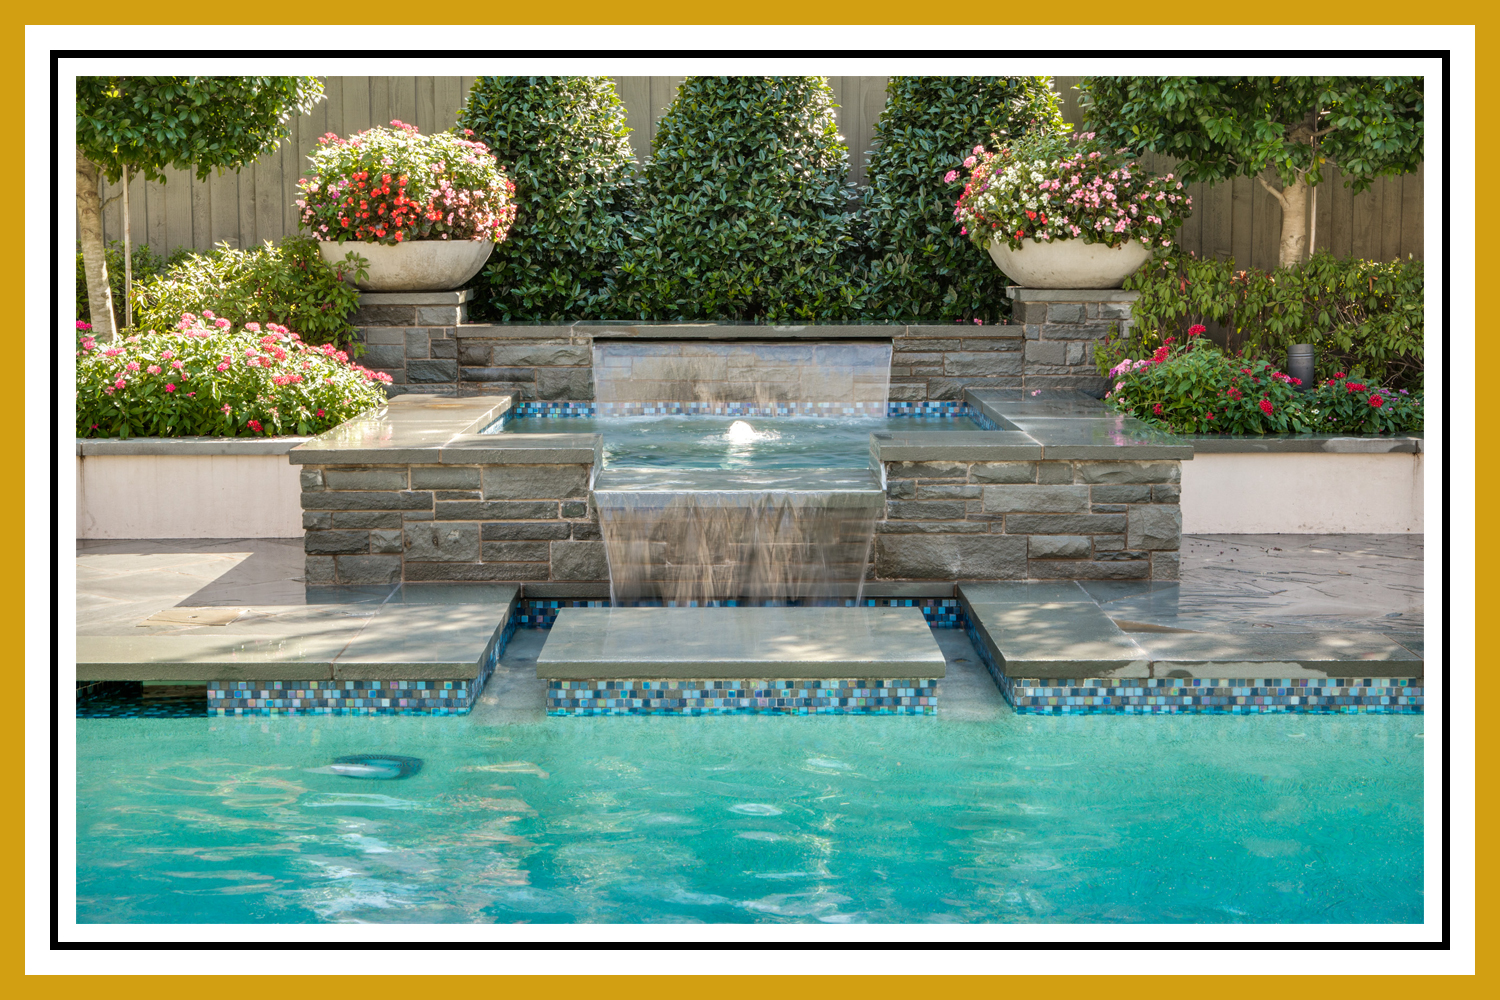 POOLS & OUTDOOR SPACES